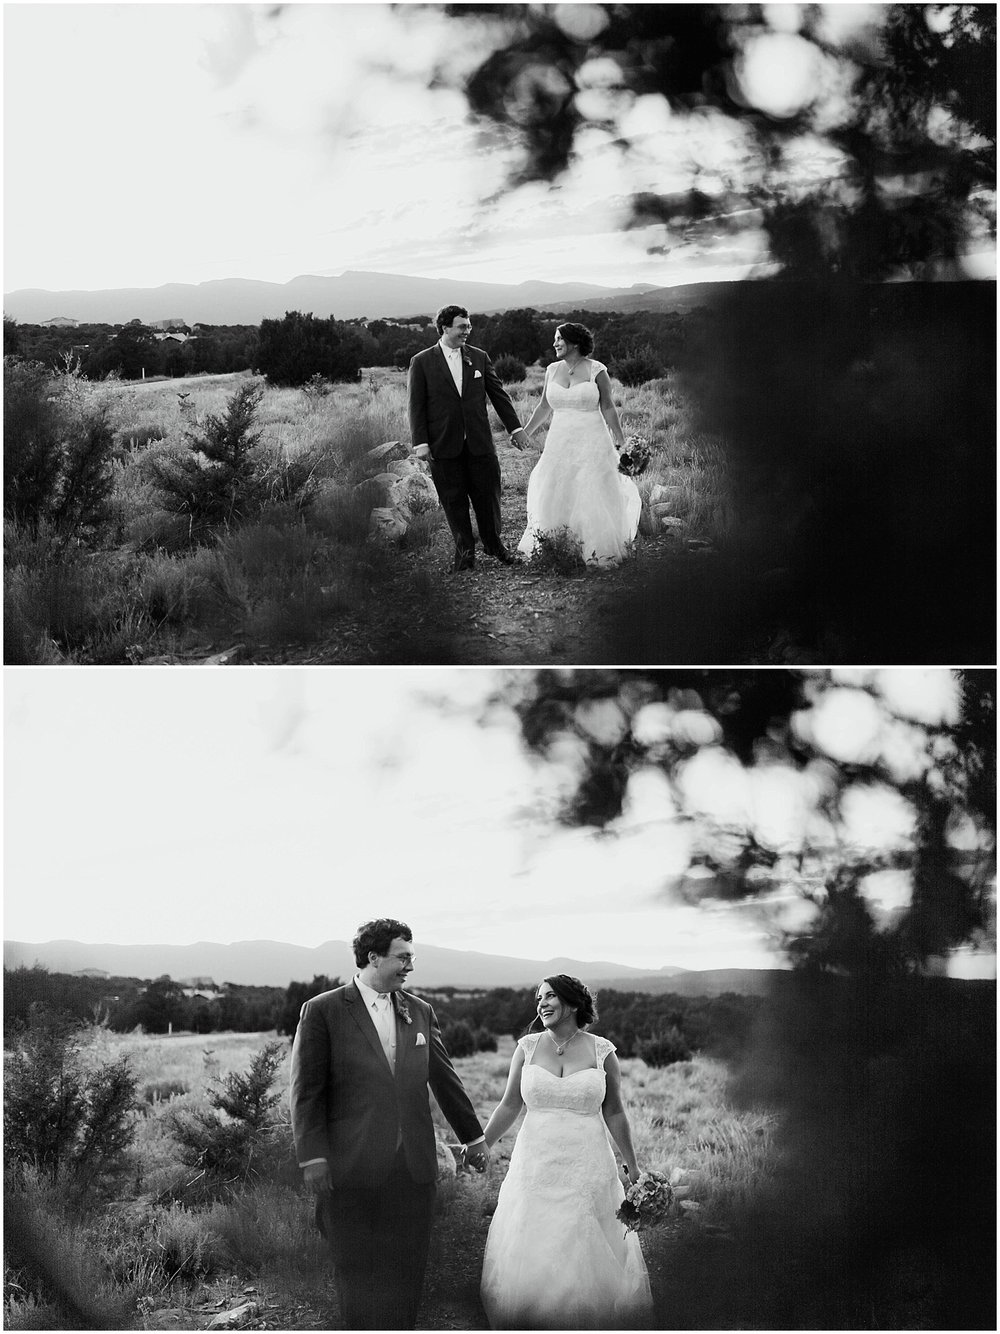 Ryan proposed to Mallory at the Studio Ghibli Museum in Mitaka, Japan so it was fitting that their beautiful wedding day at Nature Pointe weddings in Tijeras, New Mexico was like a Miyazaki film come to life. A lot of planning went into their wedding. The magic of Miyazaki's films is unlike any other so incorporating the magnificence of his imagination into Mallory + Ryan's wedding day was a must. The intricacy of their wedding details were absolutely AMAZING!